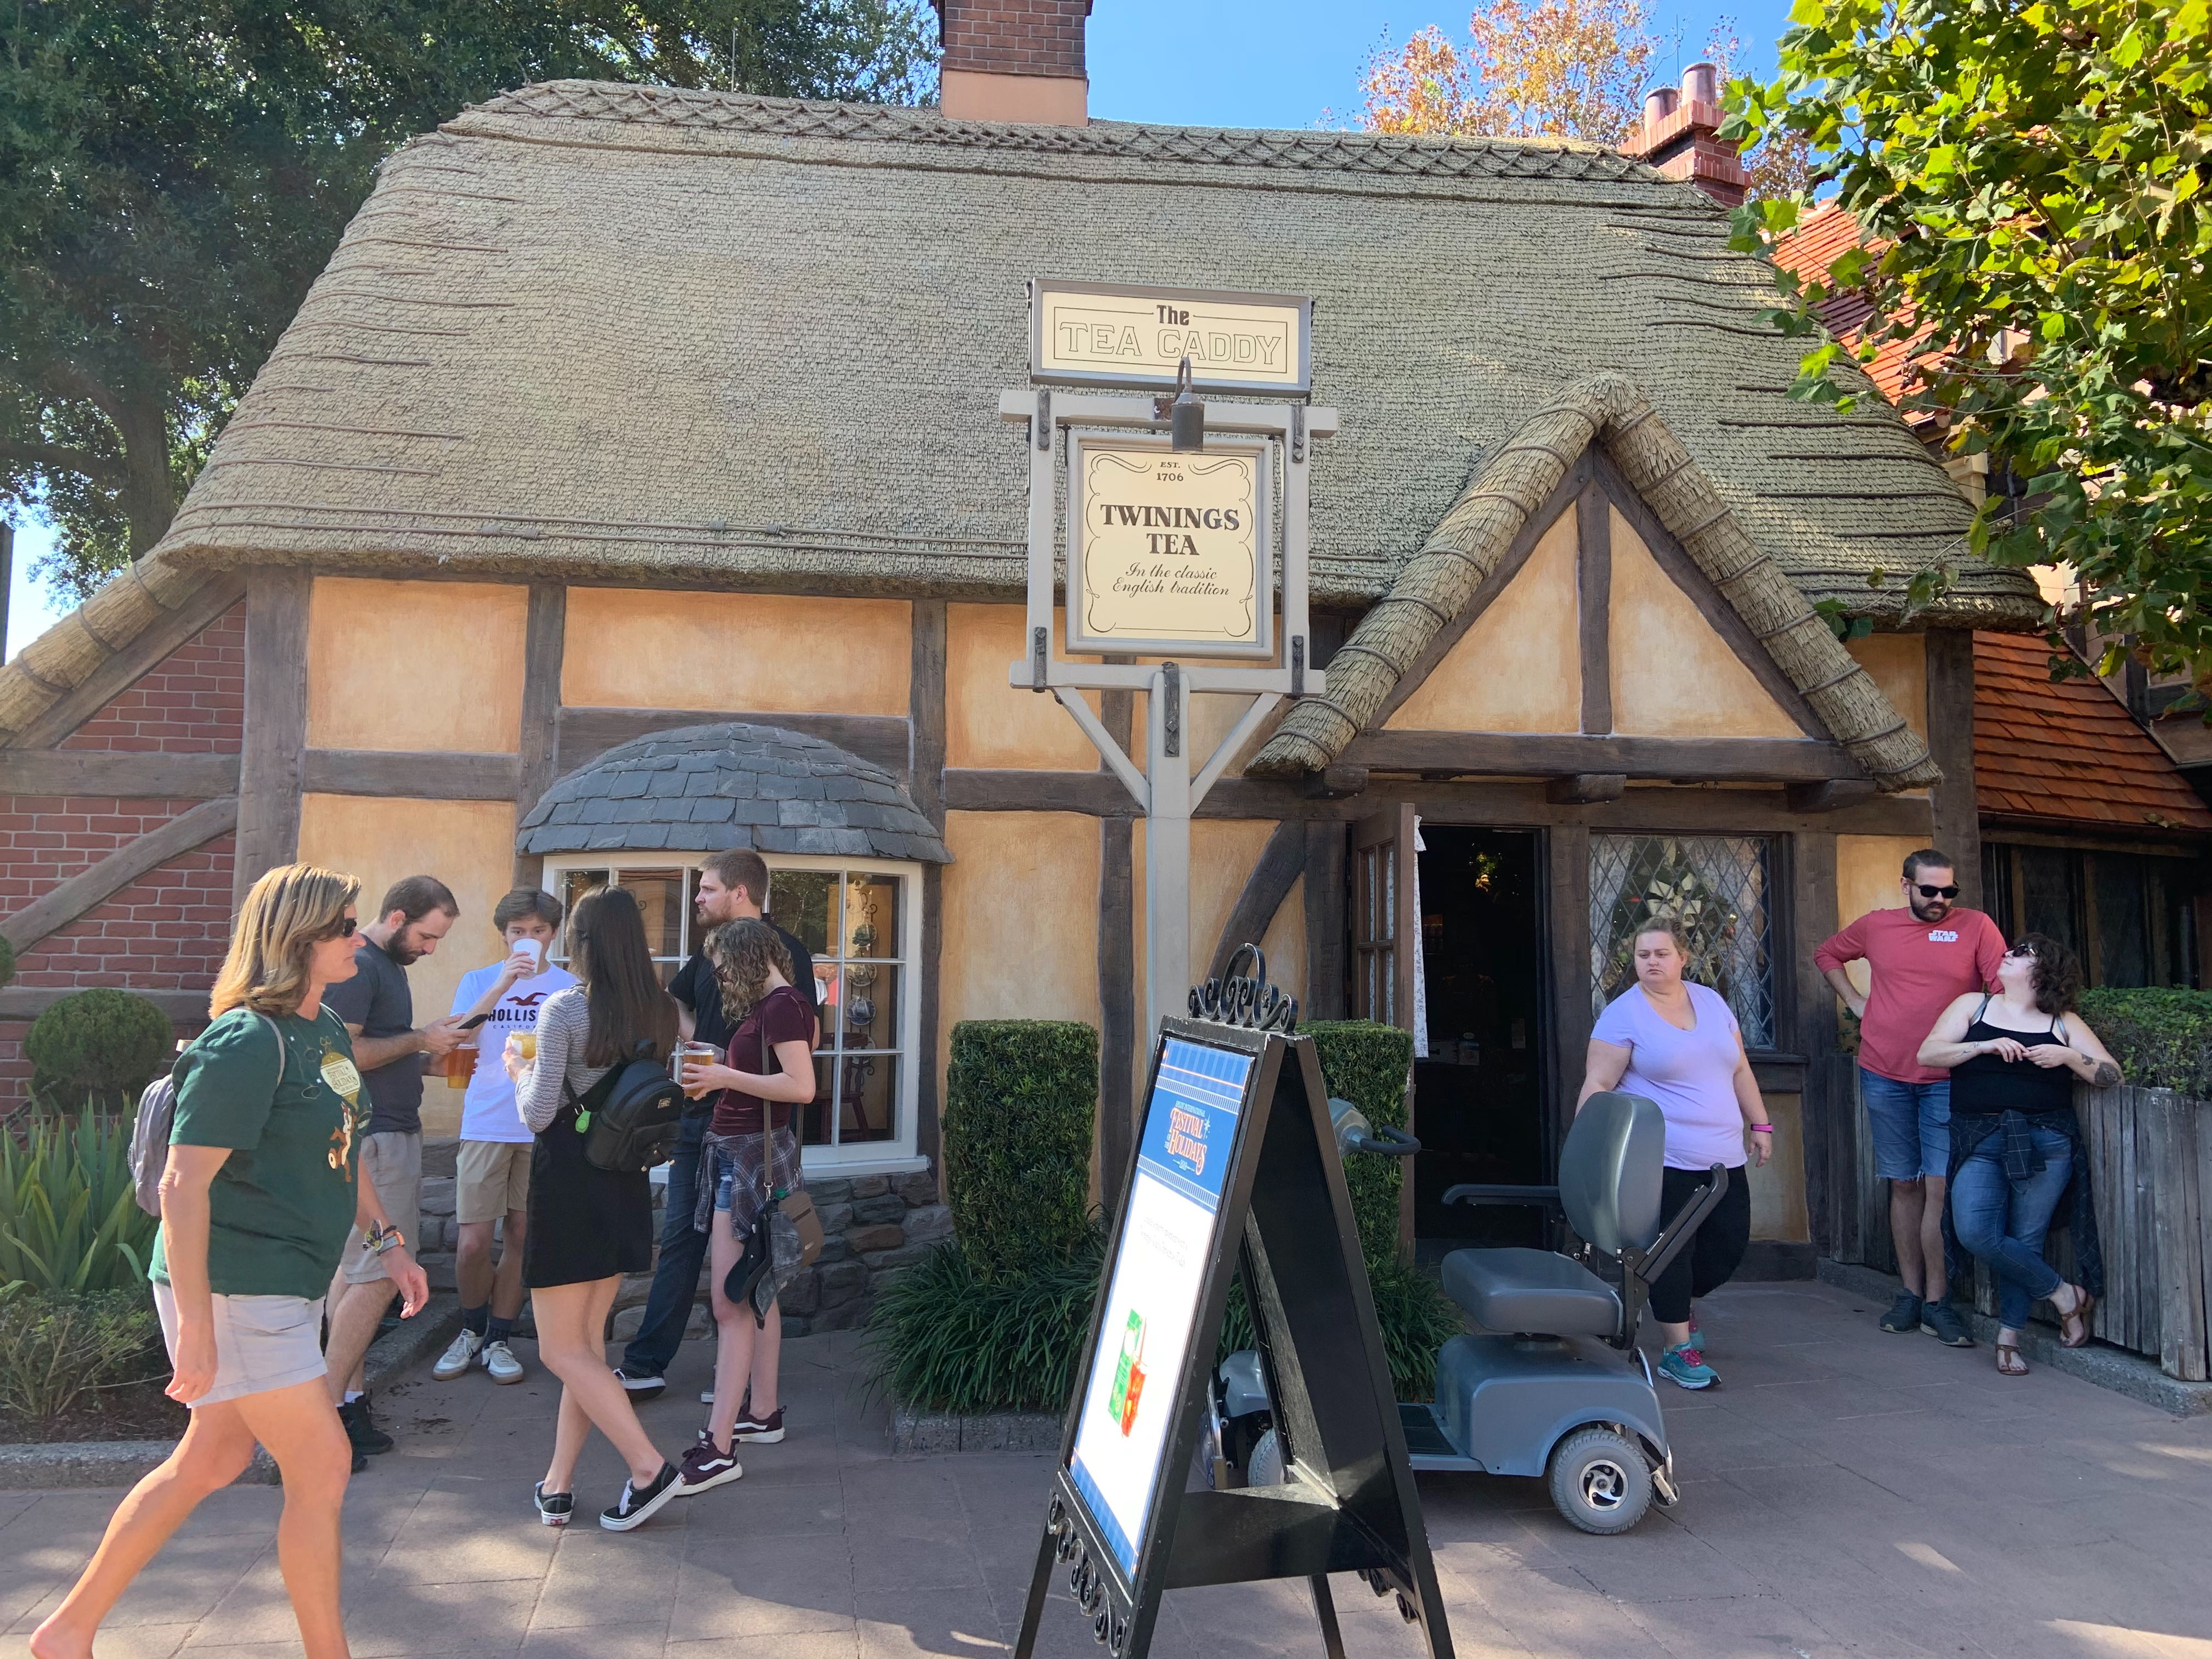 The Tea Caddy at the 2019 EPCOT International Festival of the Holidays